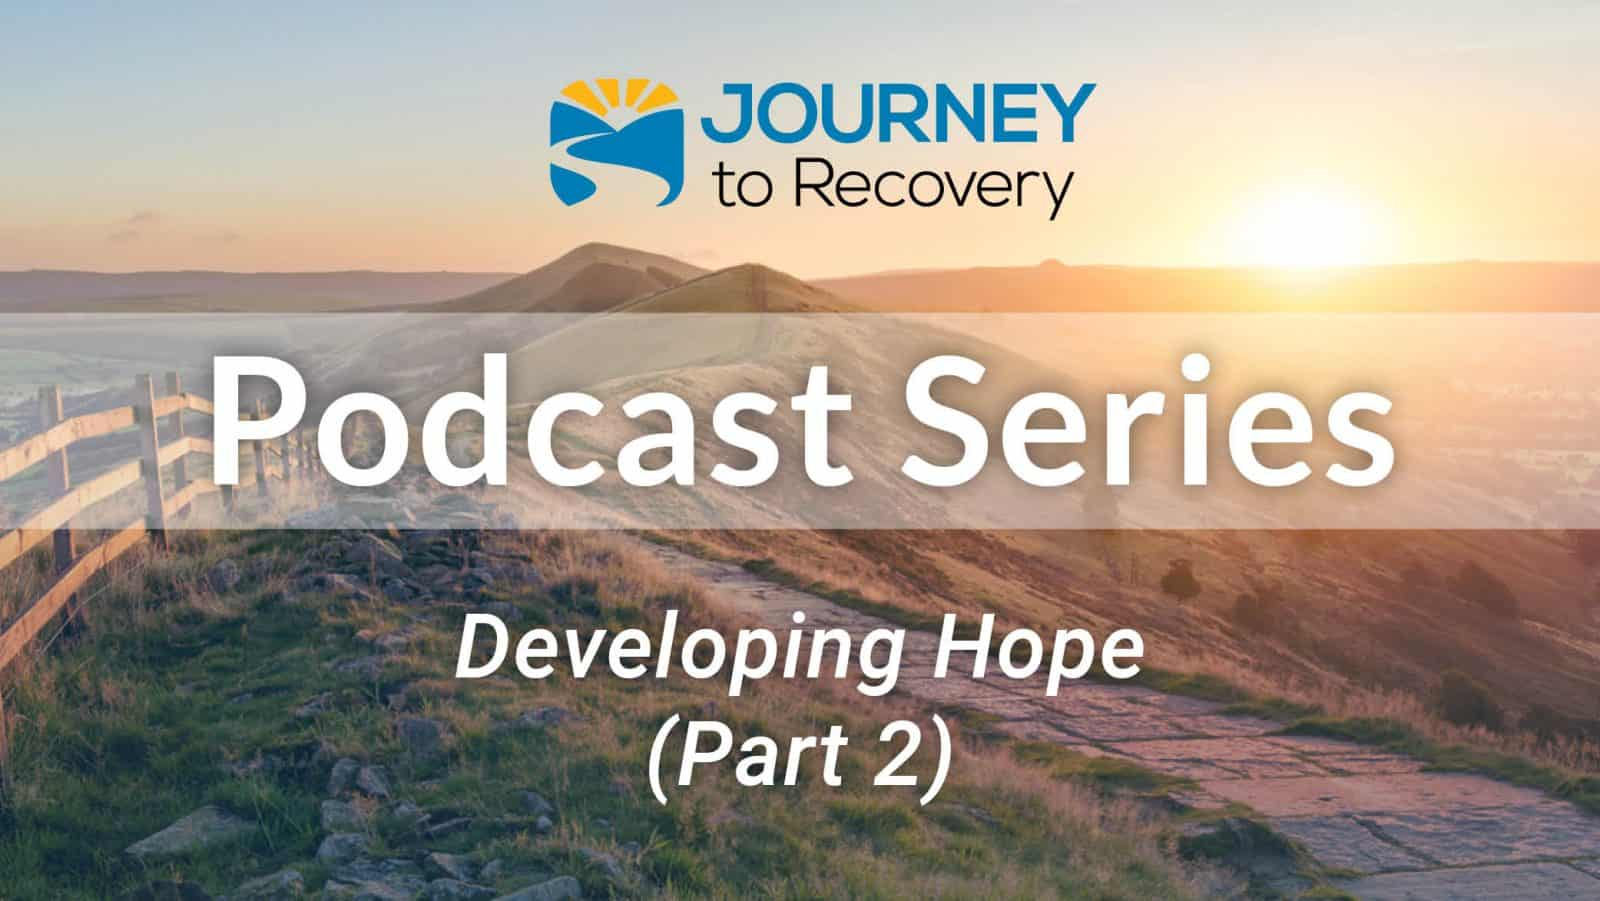 Developing Hope (Part 2)